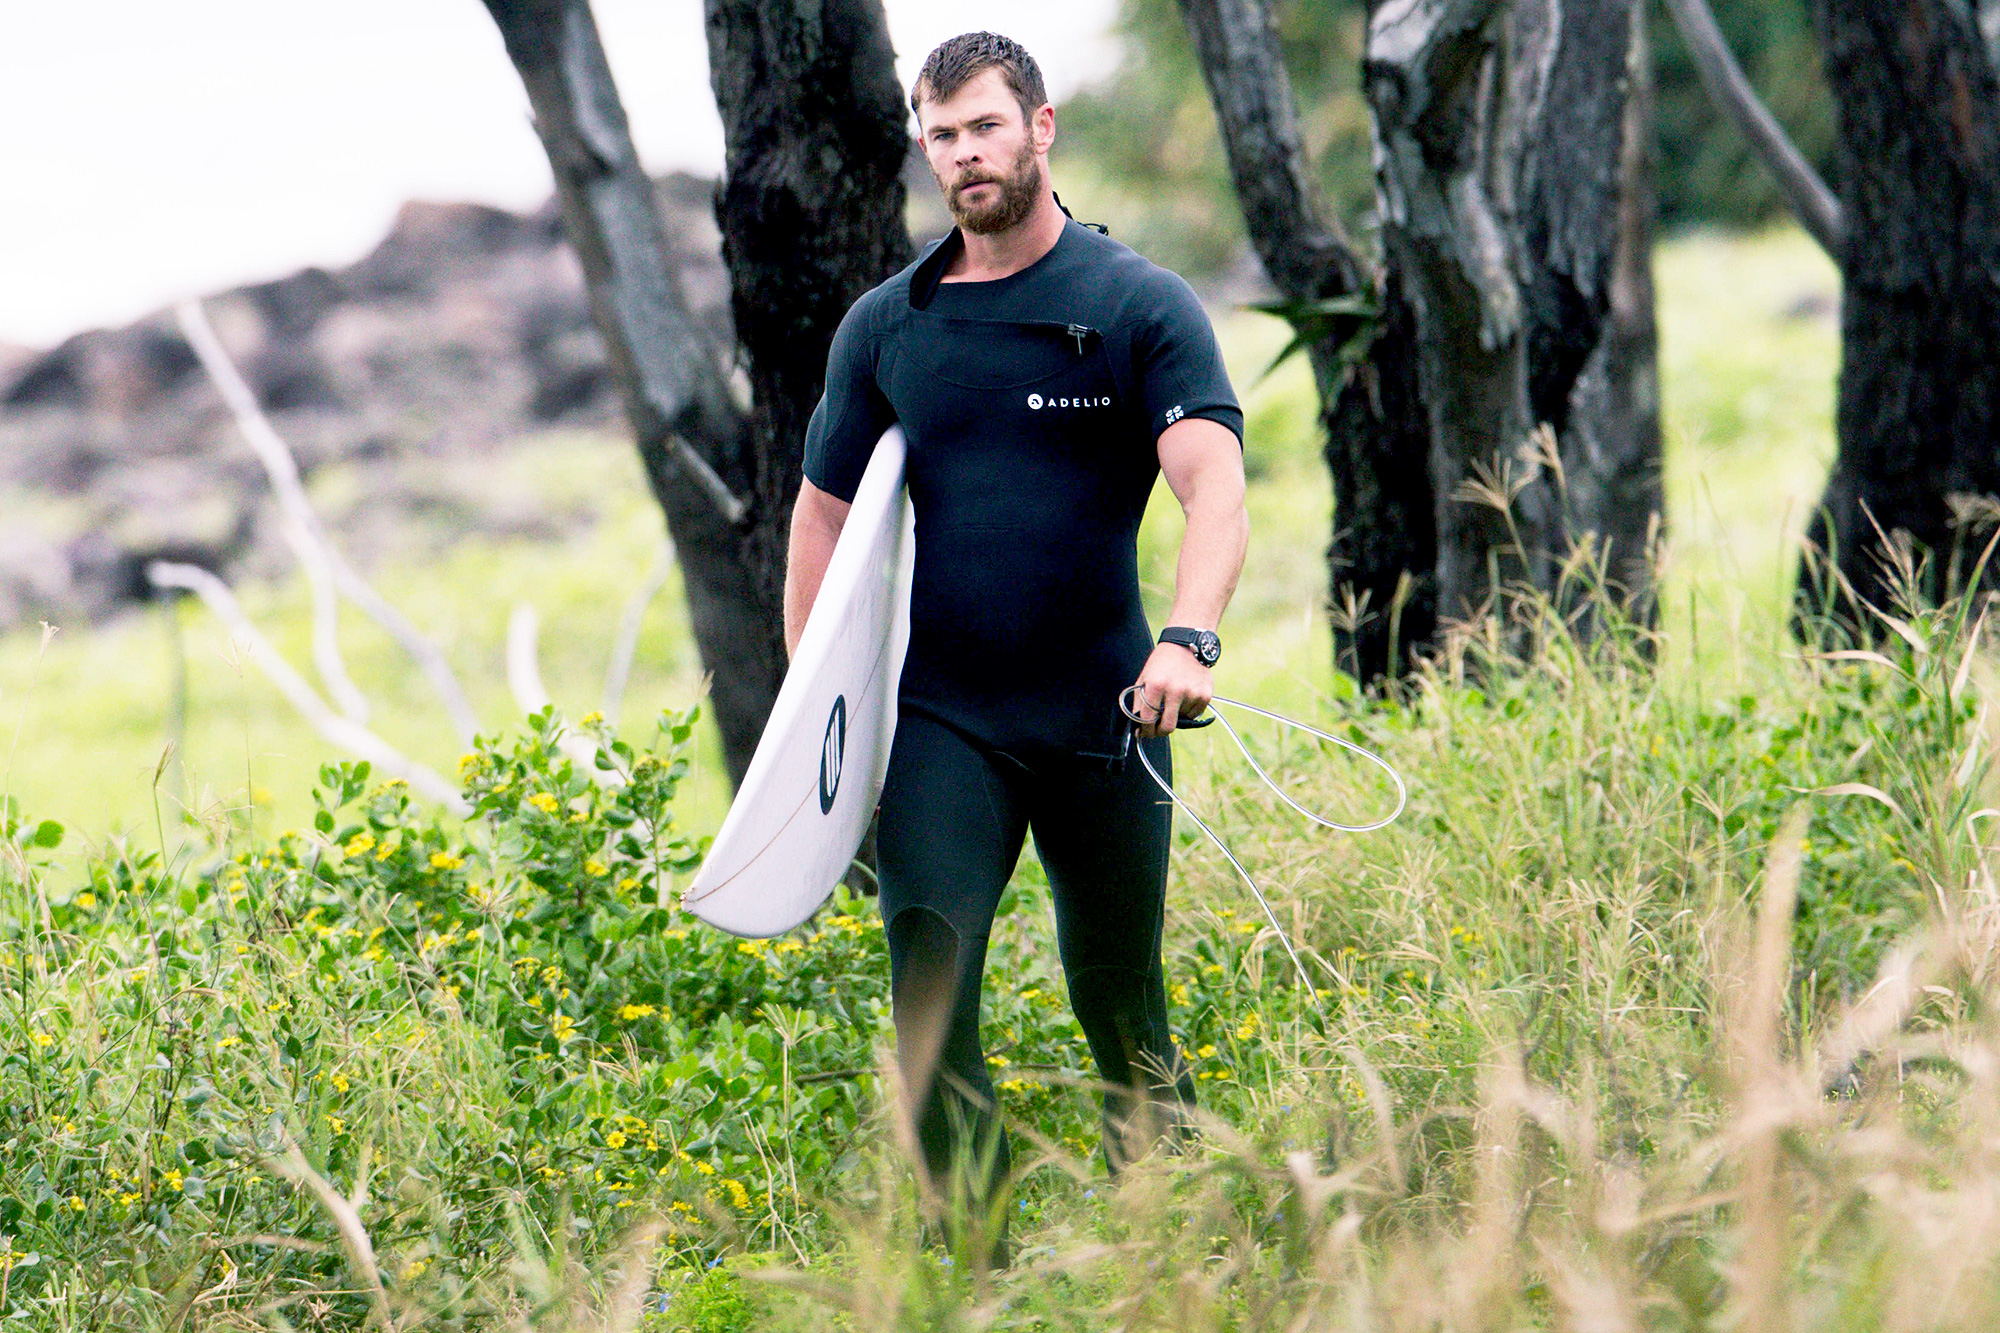 EXCLUSIVE: *NO MAIL ONLINE* Chris Hemsworth stops for a selfie with a fellow surfer in Byron Bay